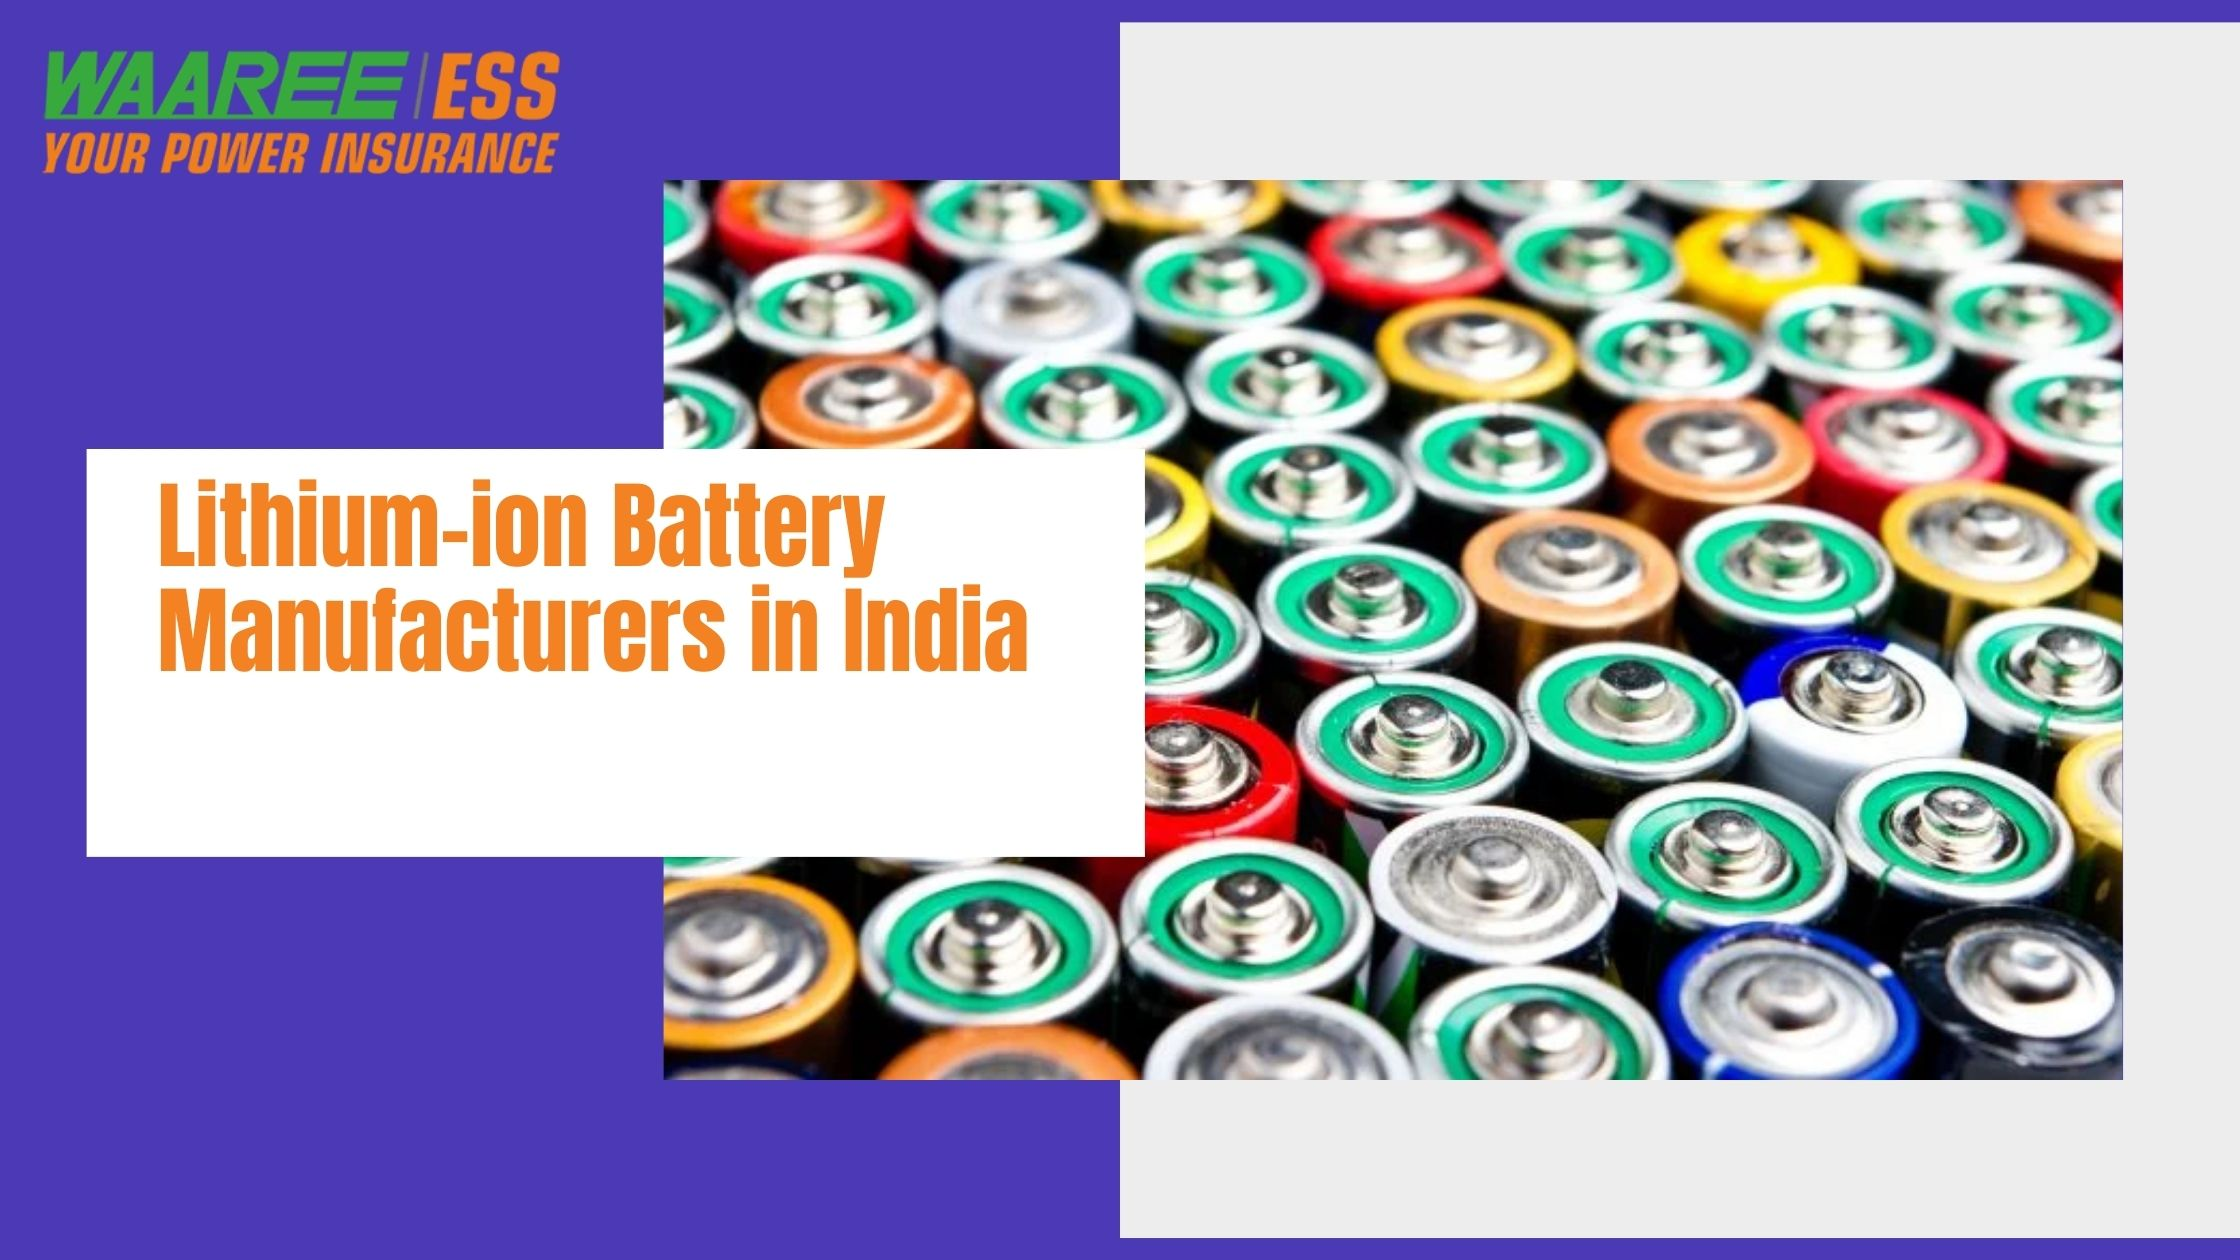 Top 5 Lithium-ion battery manufacturers in India